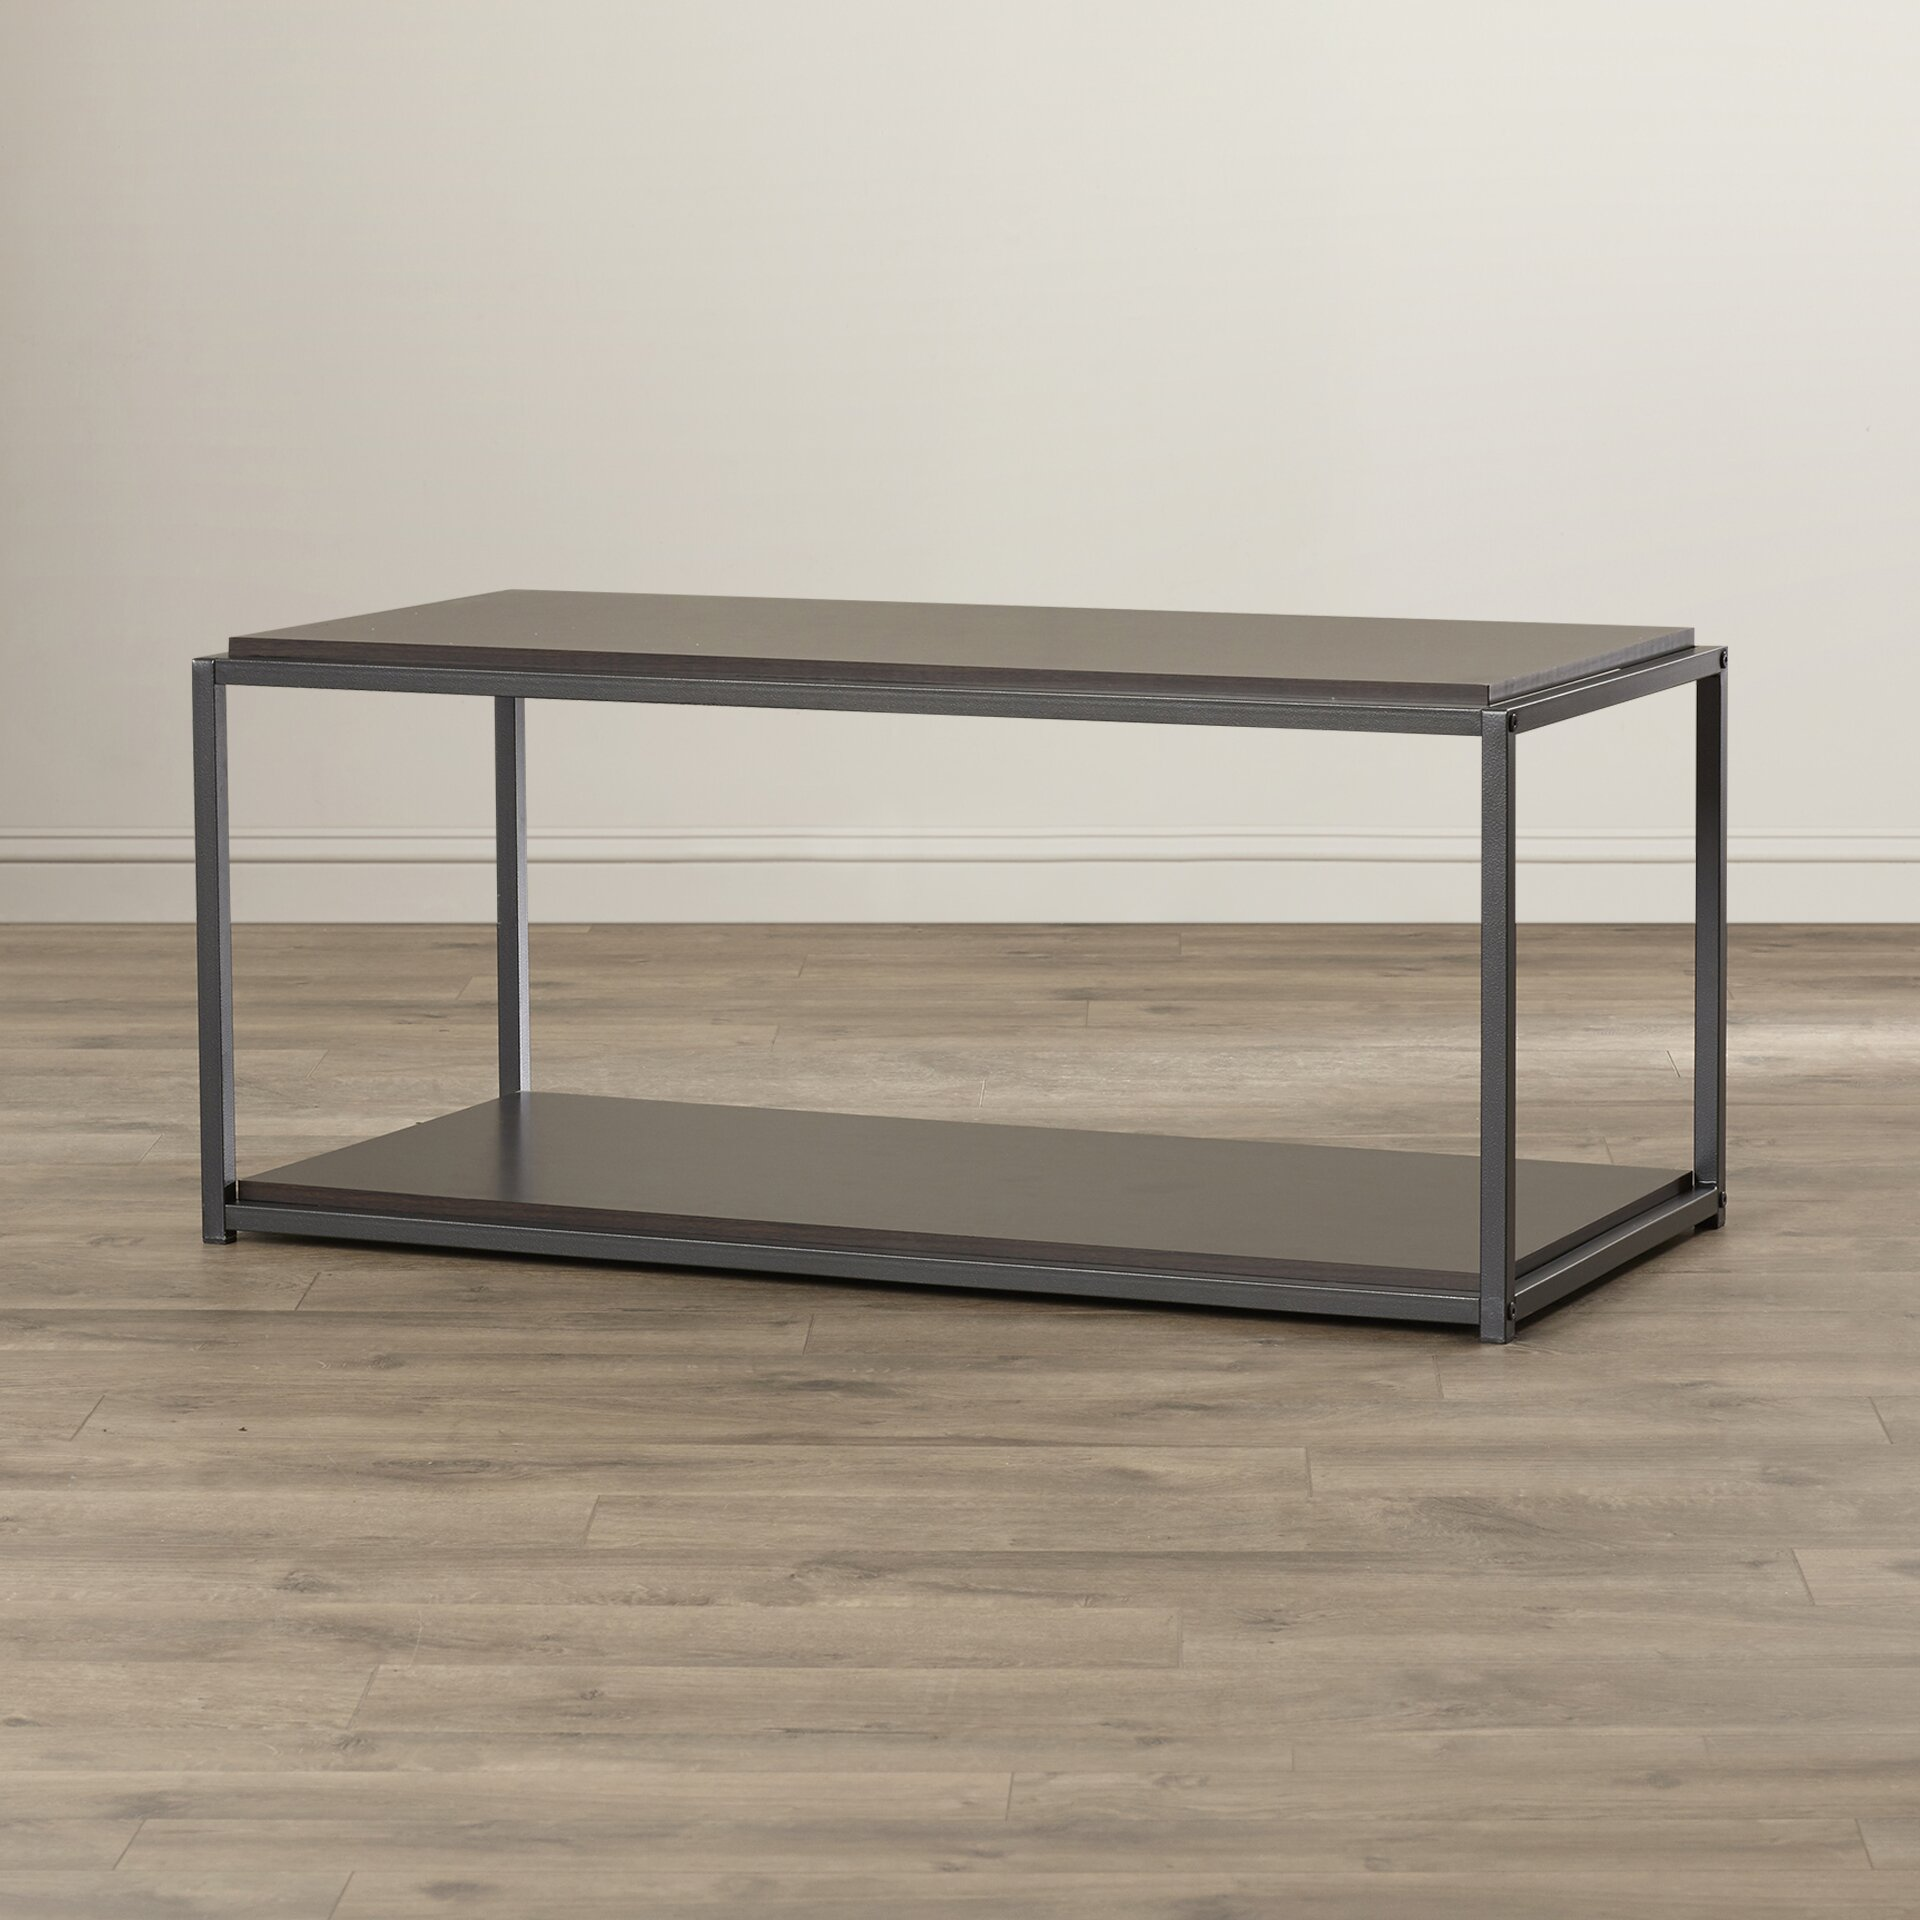 Zipcodetm design clarissa industrial coffee table reviews for Wayfair industrial coffee table